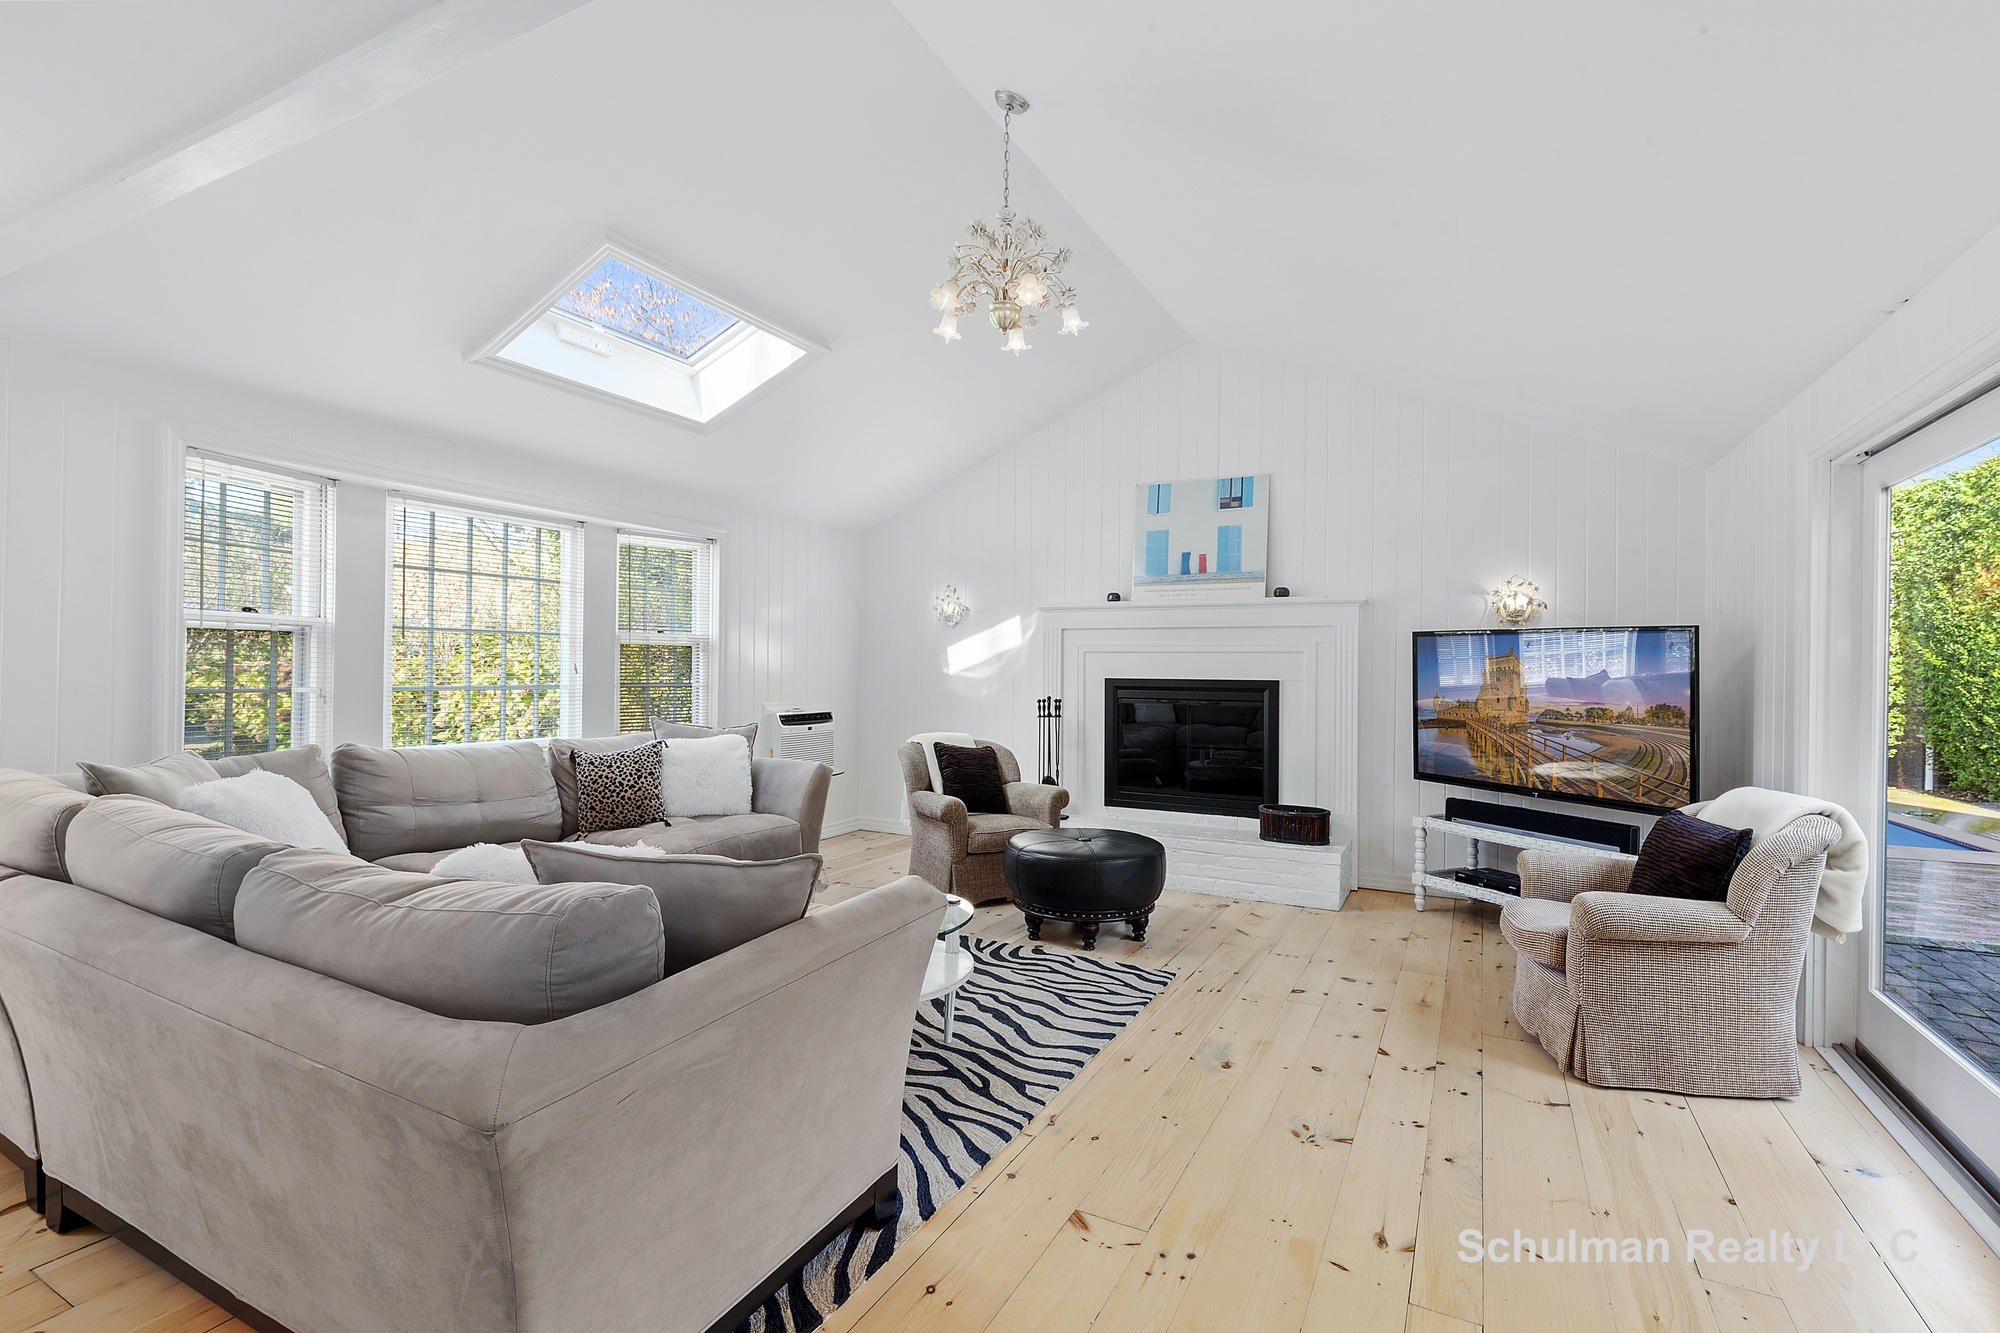 52149075living_room_8_muchmore_